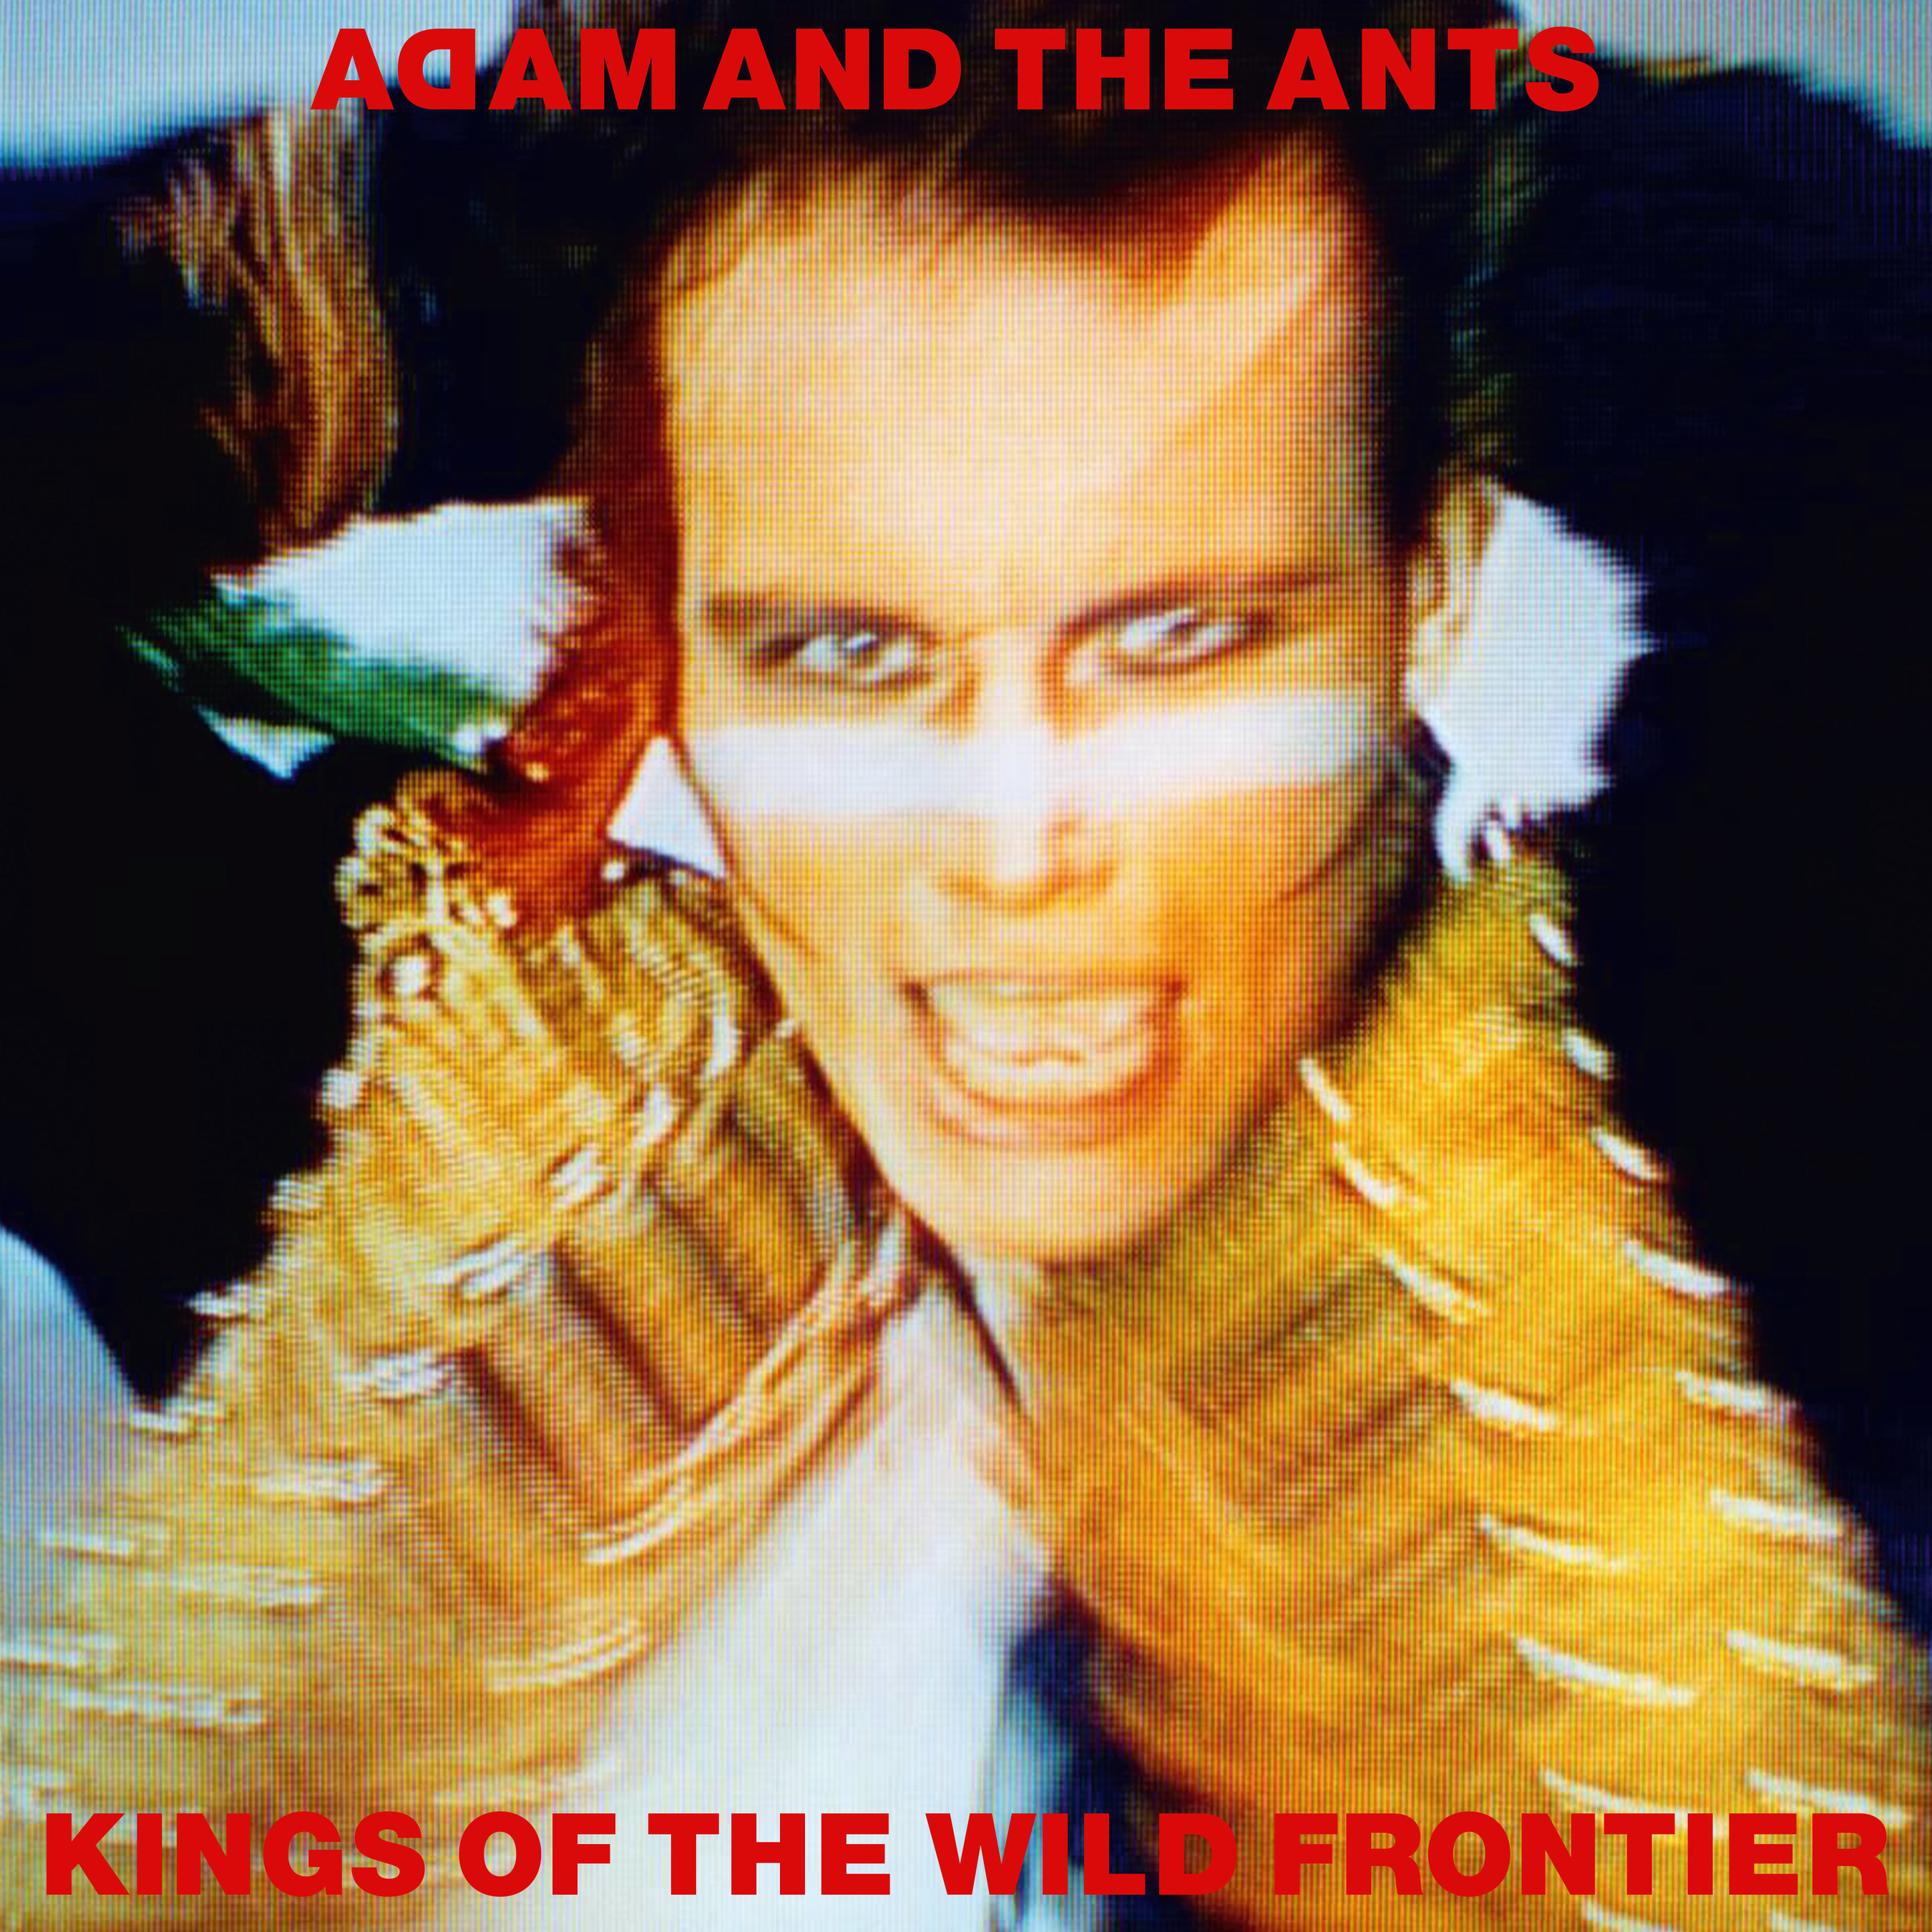 Adam & The Ants 'Kings Of The Wild Frontier' Super Deluxe Box Set Edition, 2CD Deluxe Edition, Vinyl & Digital Formats